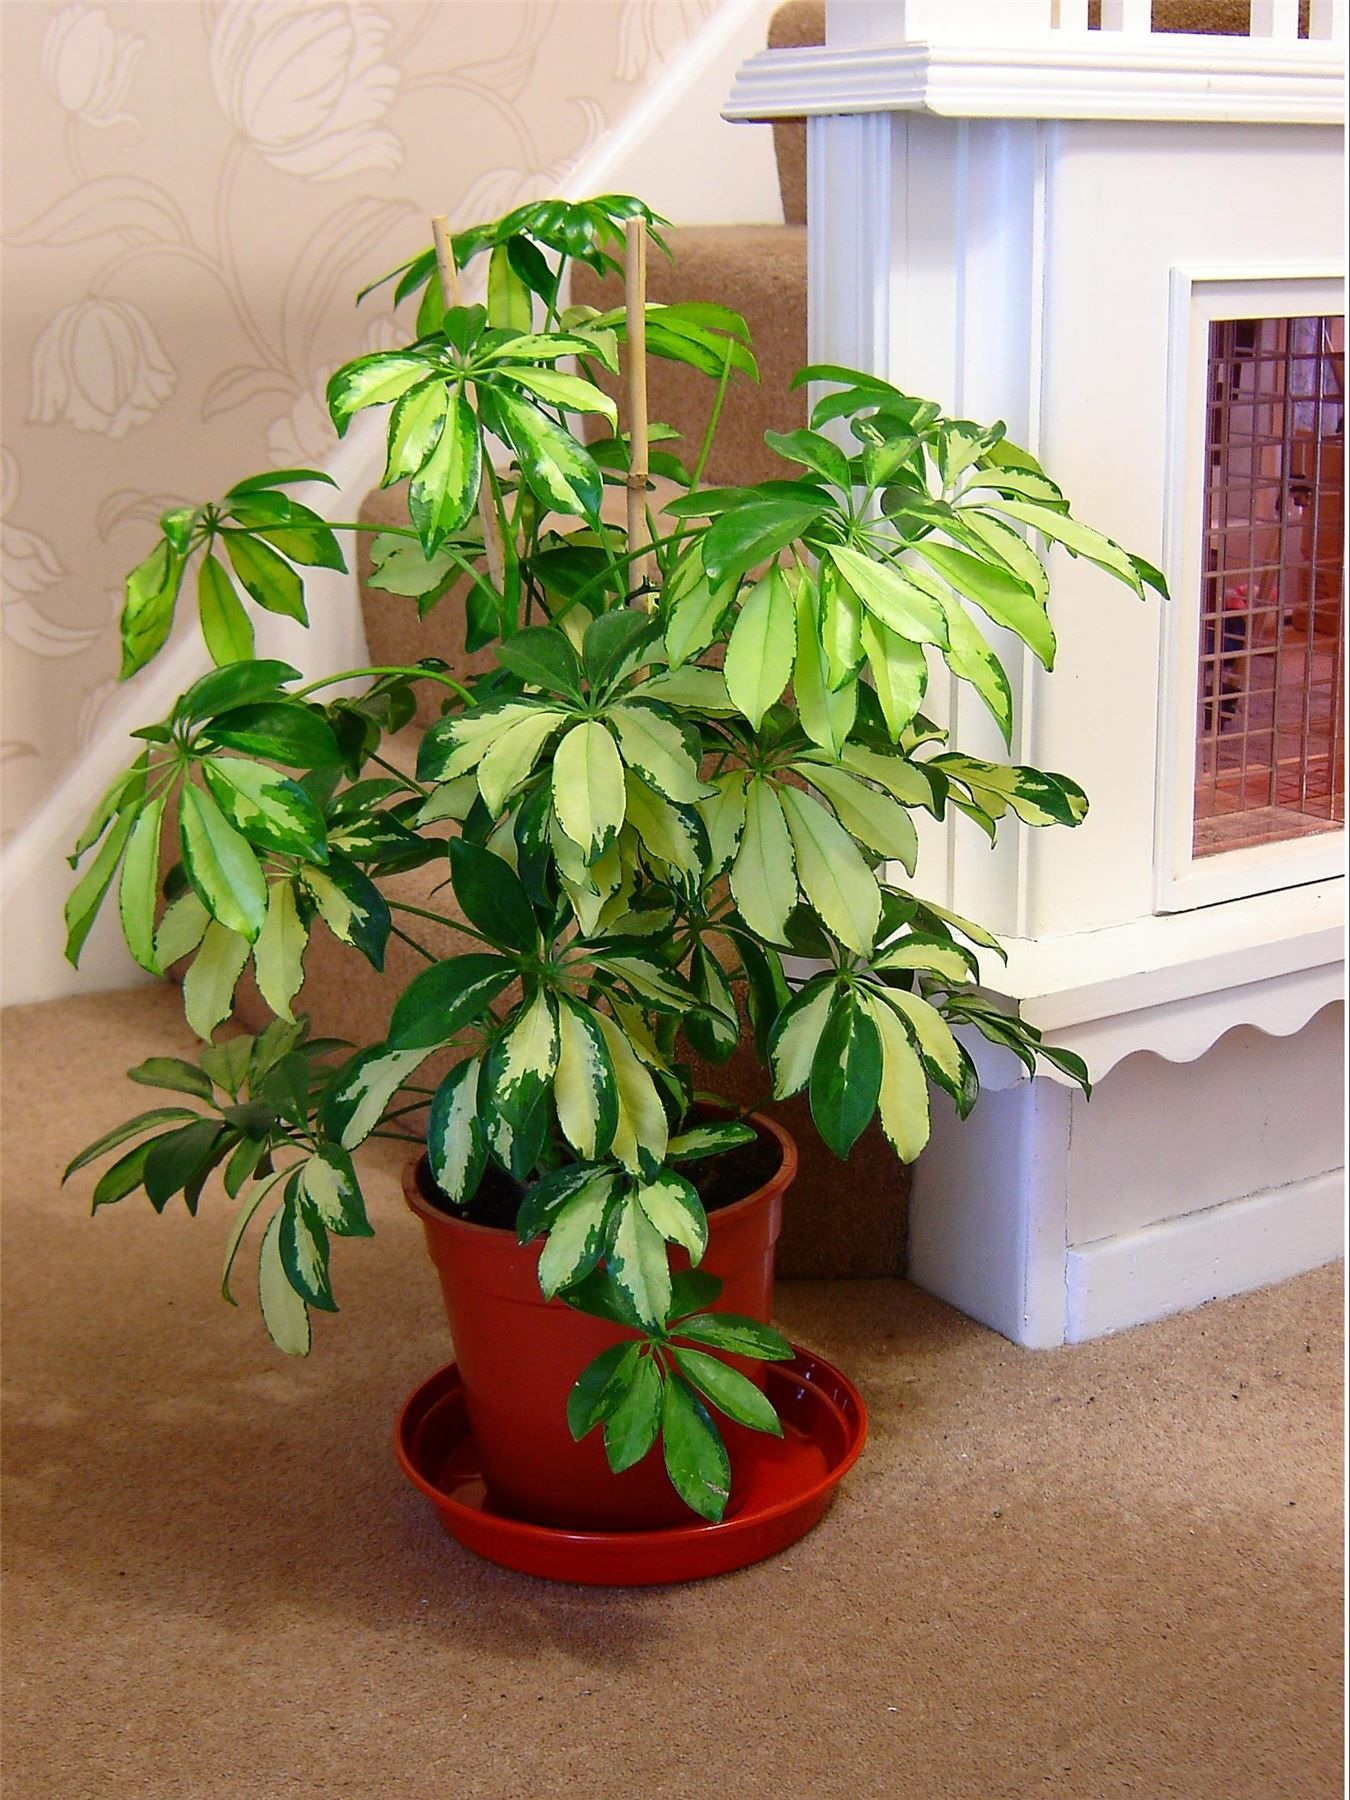 schefflera umbrella tree is trees shrubs liana flowering that can grown for tall indoor plant and - Tall Flowering House Plants